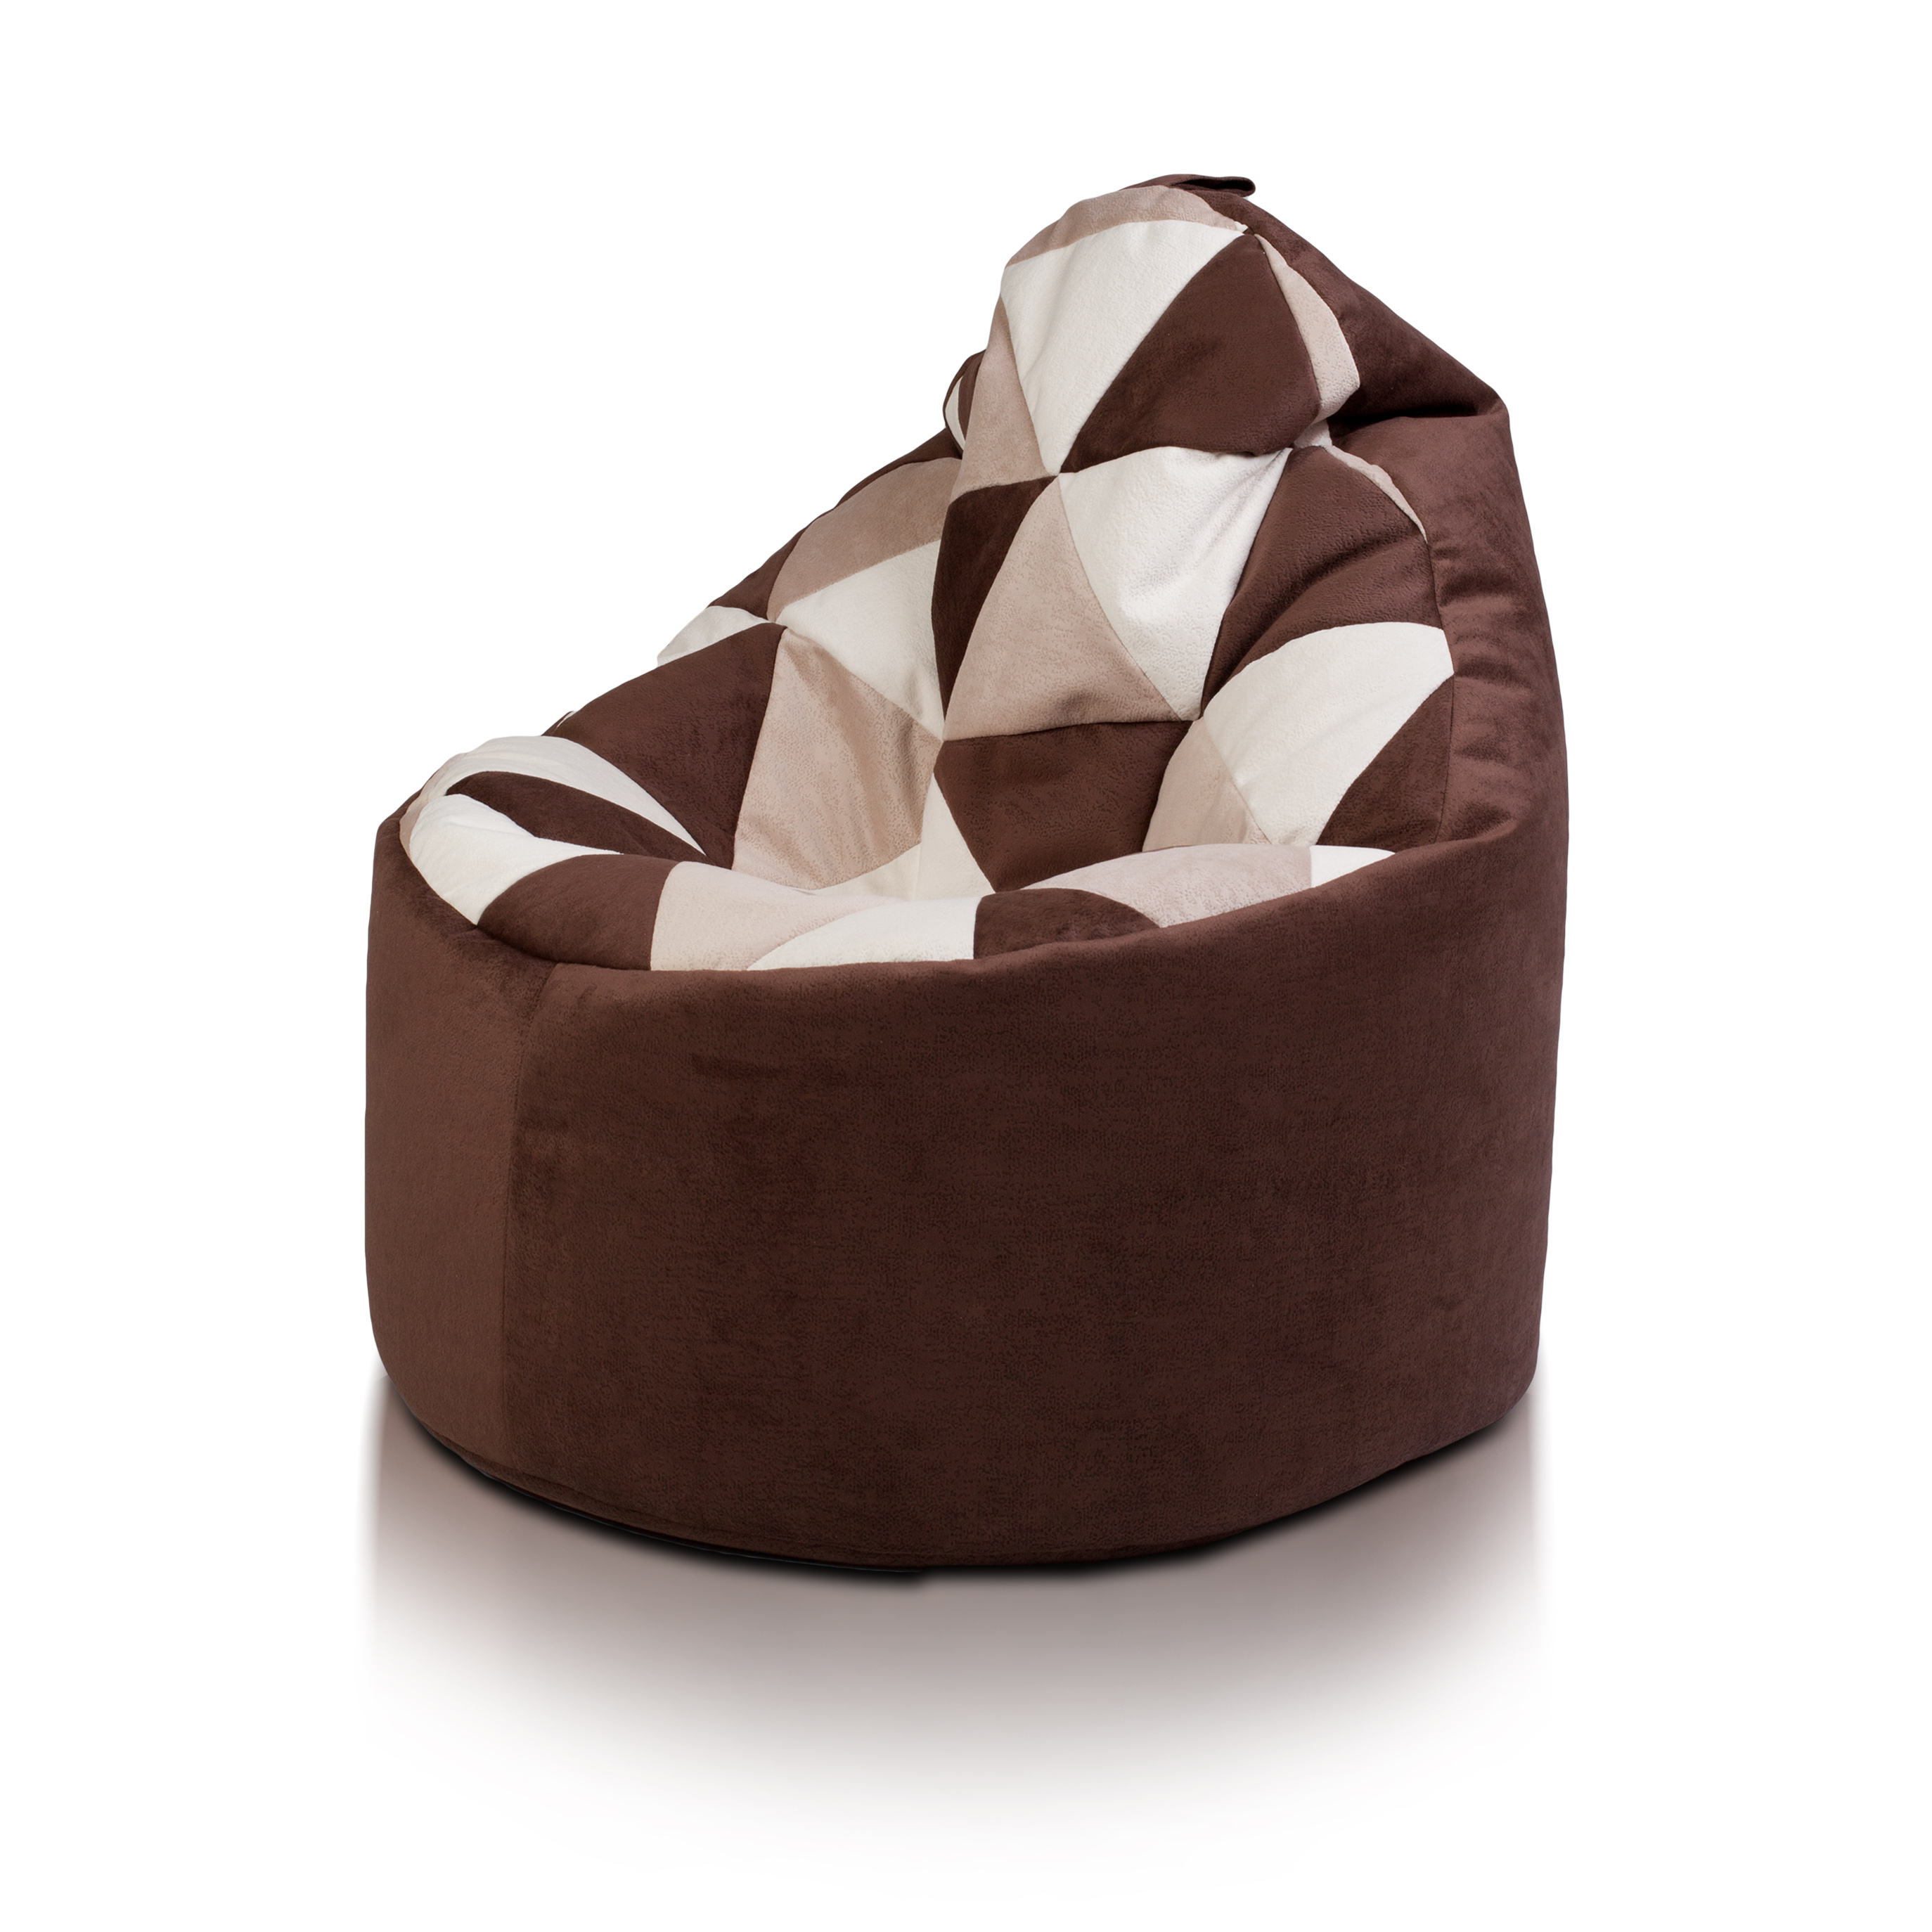 Least Price Resistant to Damage Armchair Bean Bag